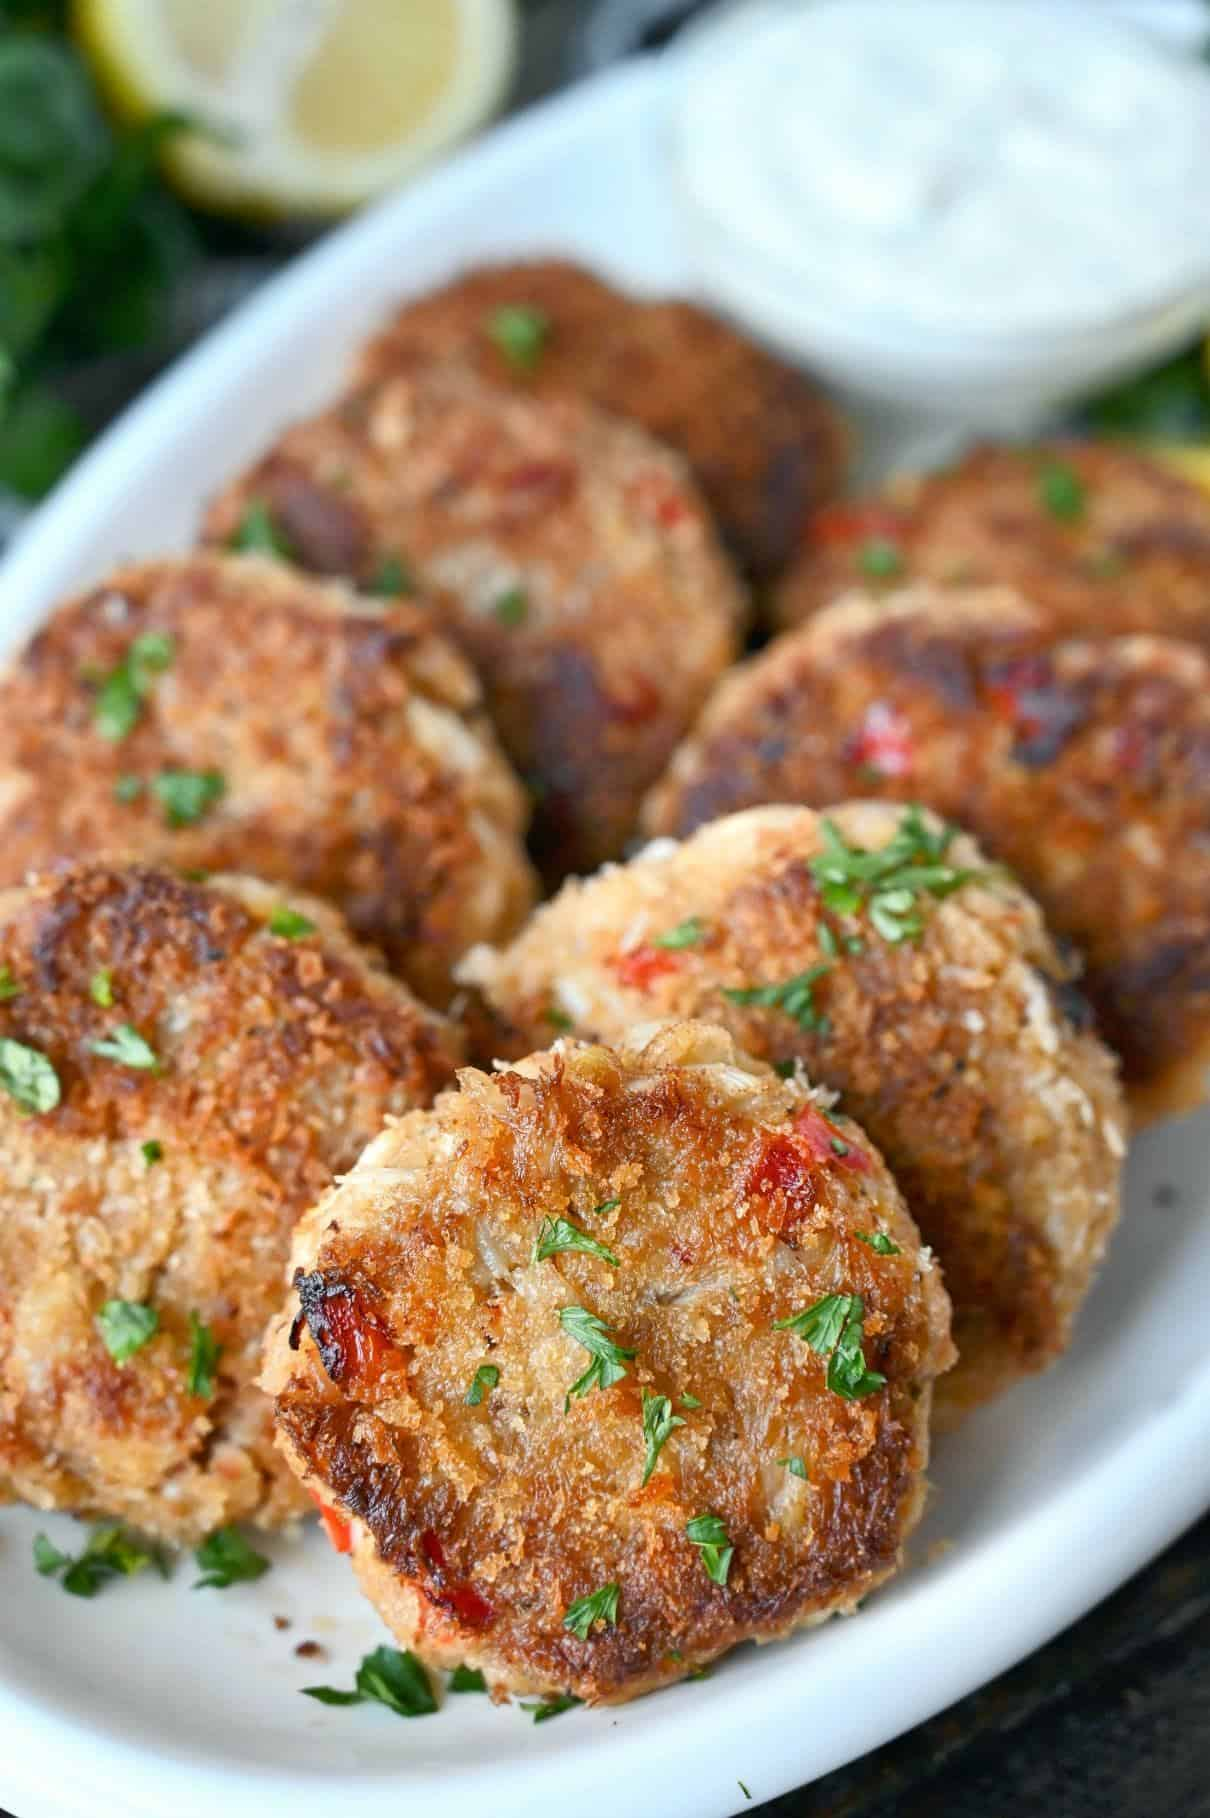 Crab cakes on a white platter.